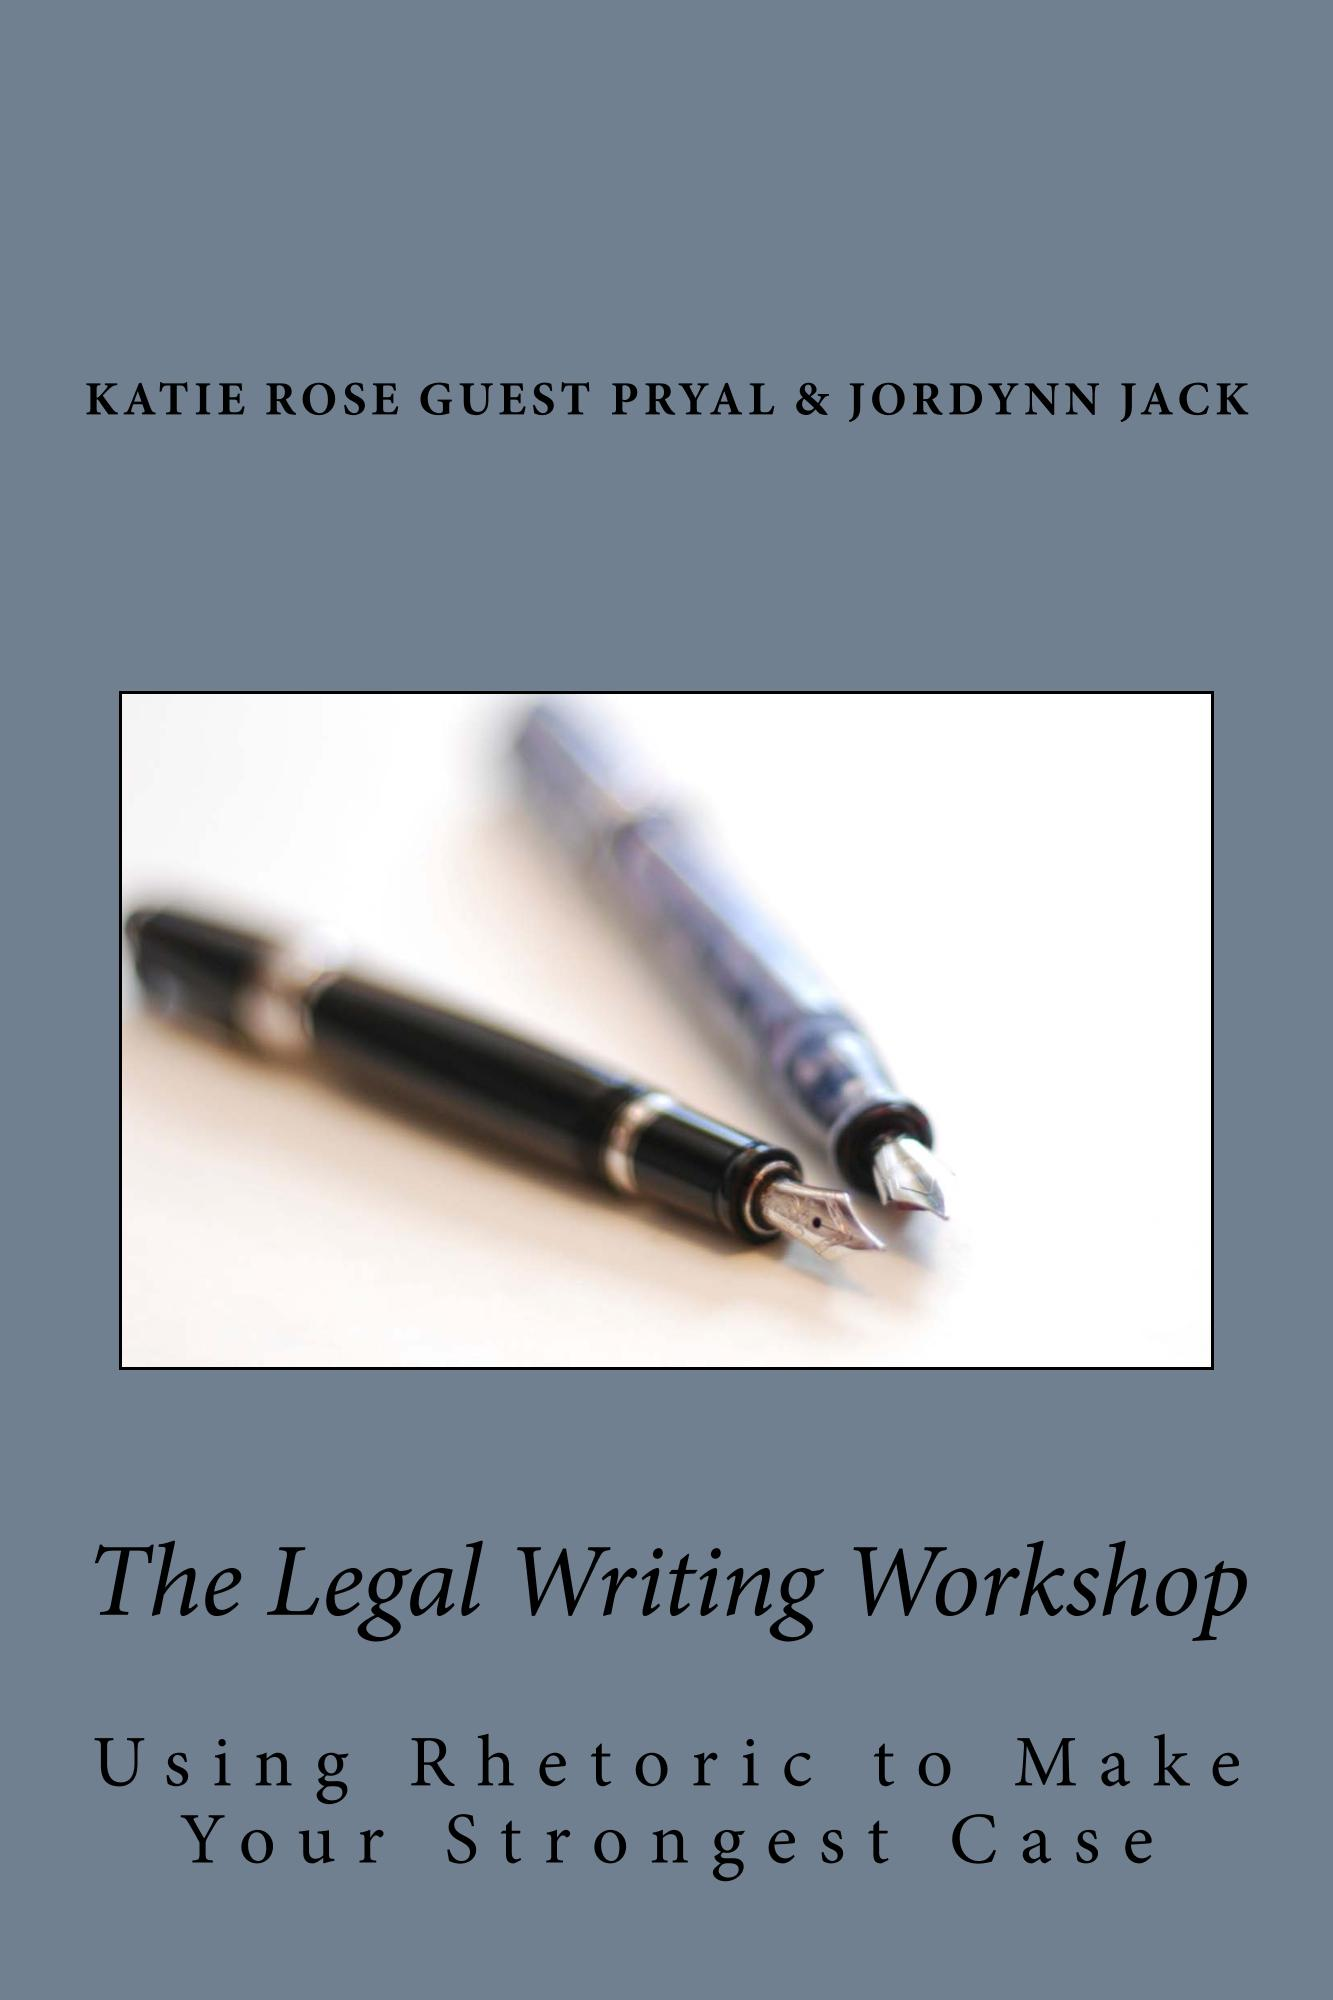 Cover image of The Legal Writing Workshop: Using Rhetoric to Make Your Strongest Case (2015 Research Triangle Press)